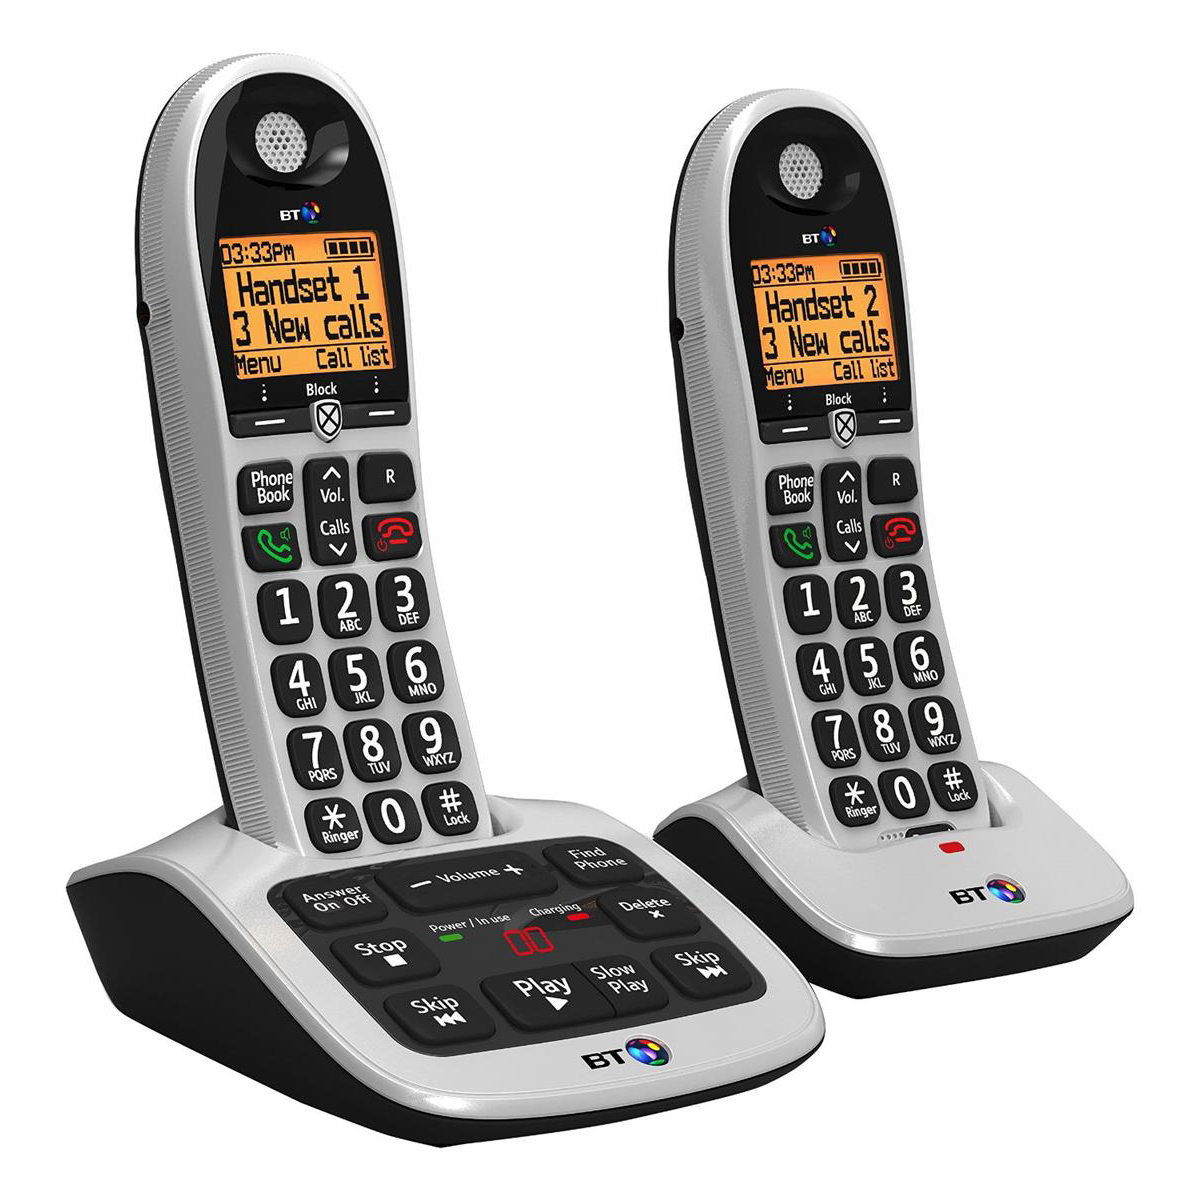 Telephones BT 4600 Twin Handset DECT Telephone with Answering Machine Ref 55263